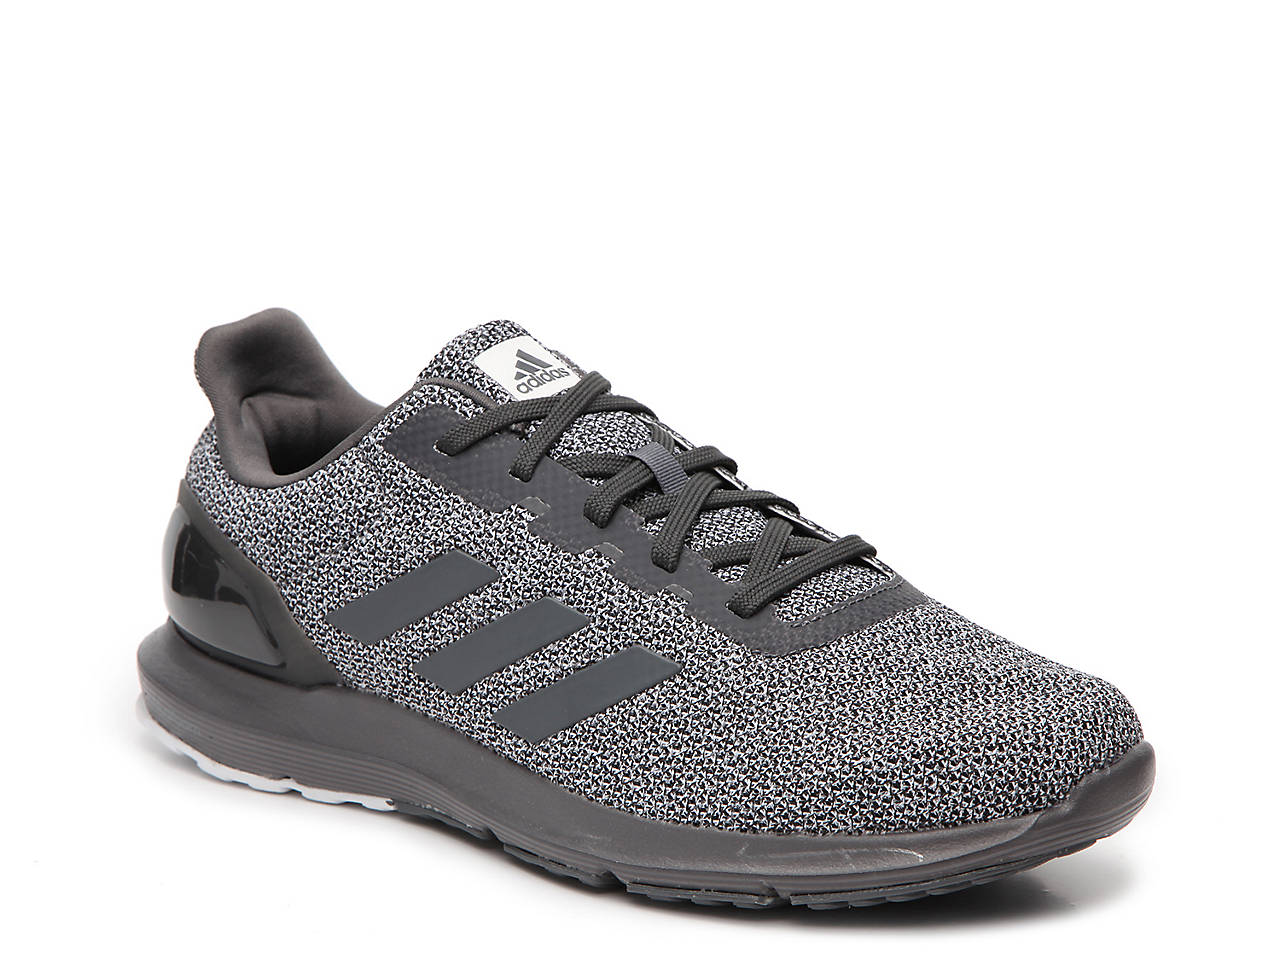 uk availability 4e11d 7f068 Cosmic 2 Running Shoe - Men's